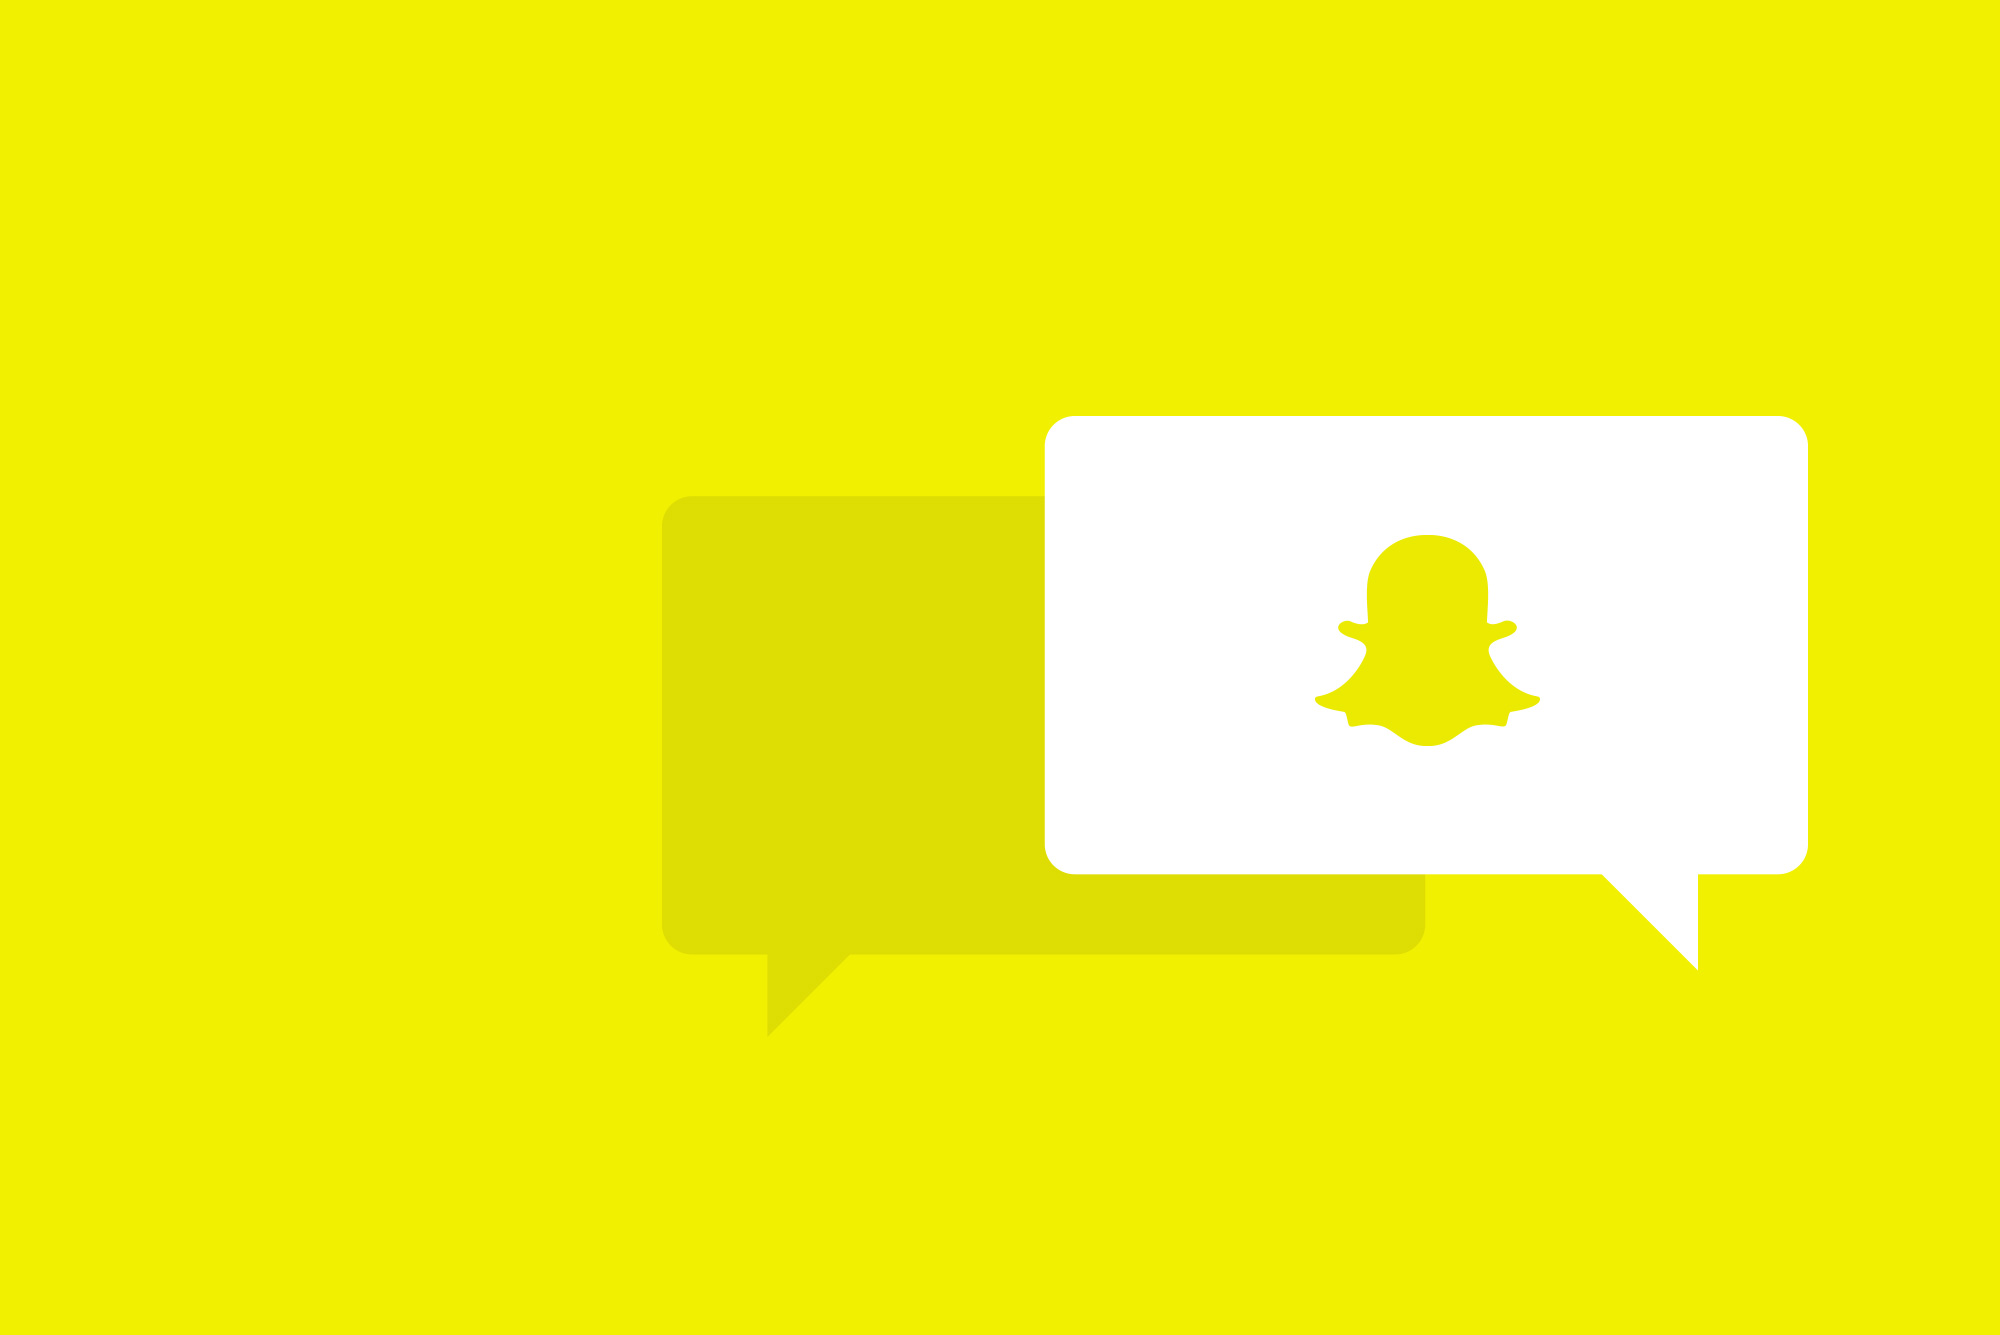 Speech bubbles with Snapchat logo on yellow background - Snapchat story